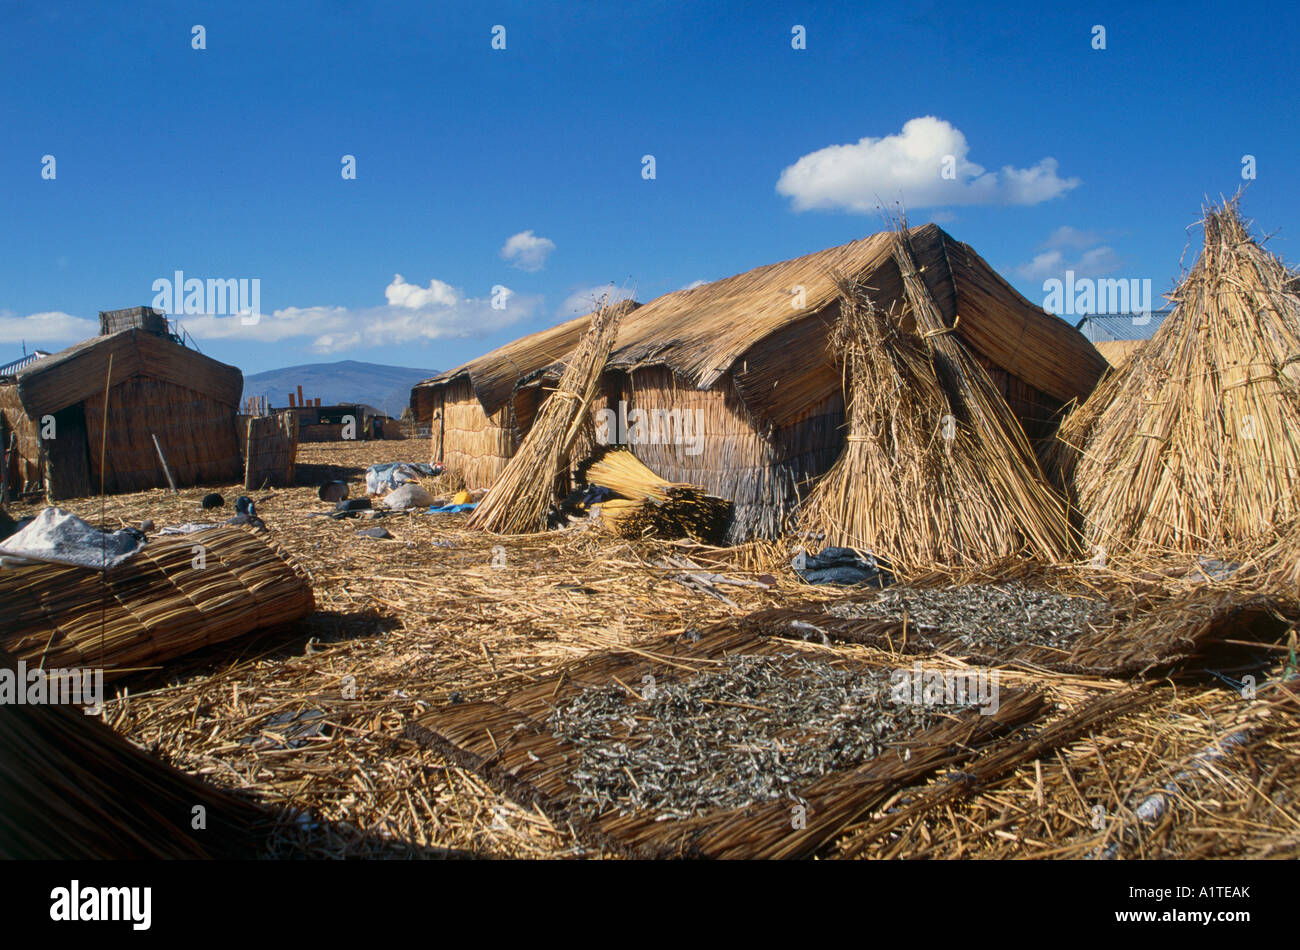 drying fishes floating island made by totora reed lake titicaca peru bolivia - Stock Image